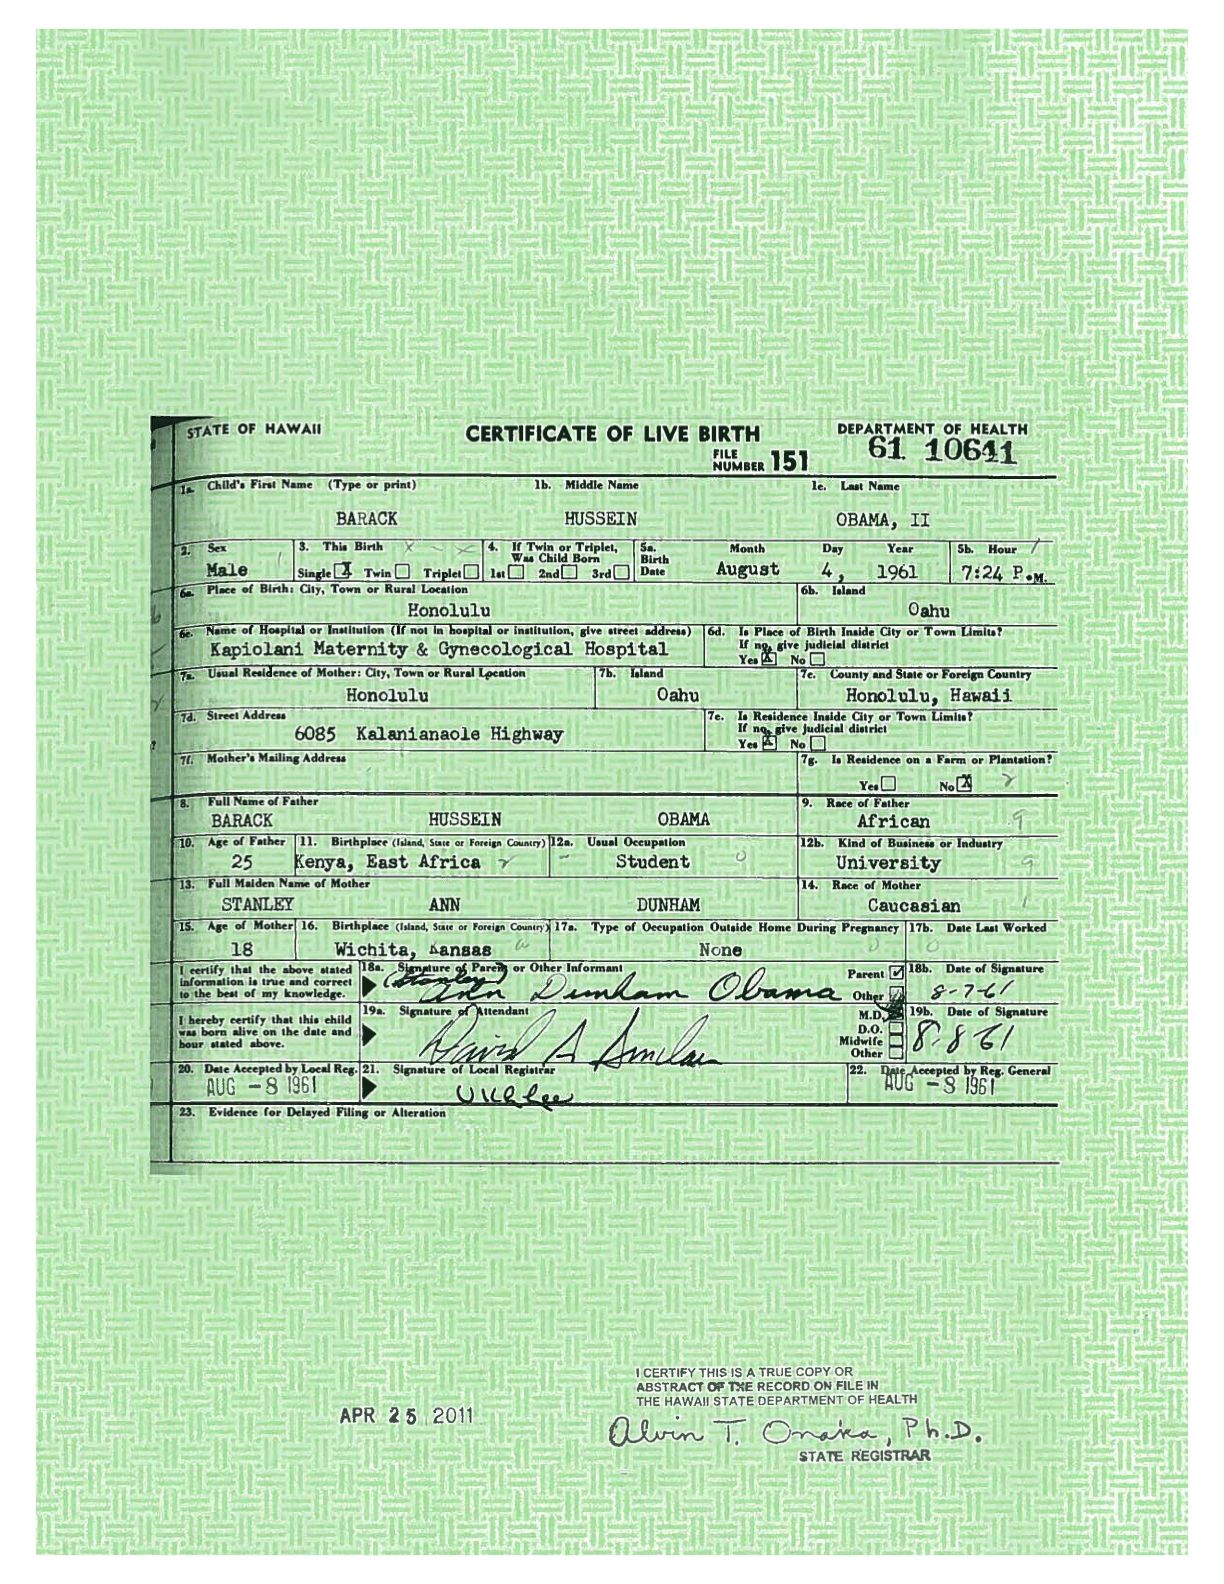 Beautiful gallery of view birth certificate online business view birth certificate online fresh white house releases president obama s long form birth certificate aiddatafo Gallery